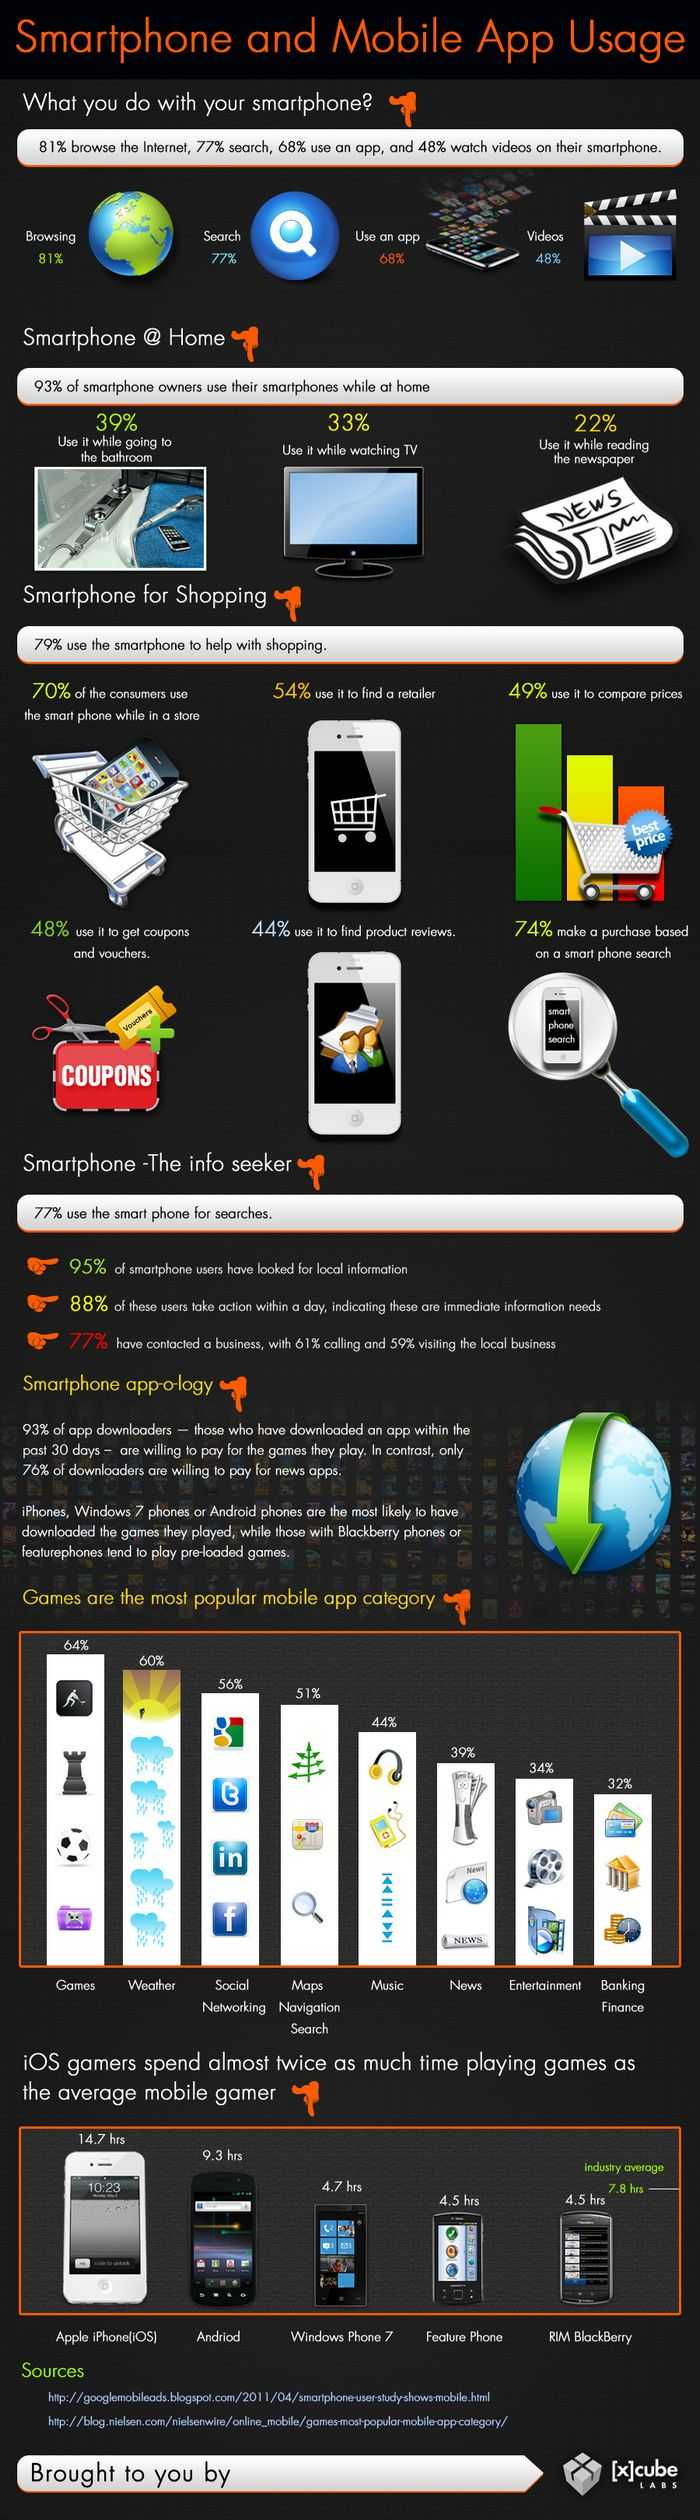 Smartphone and mobile app usage